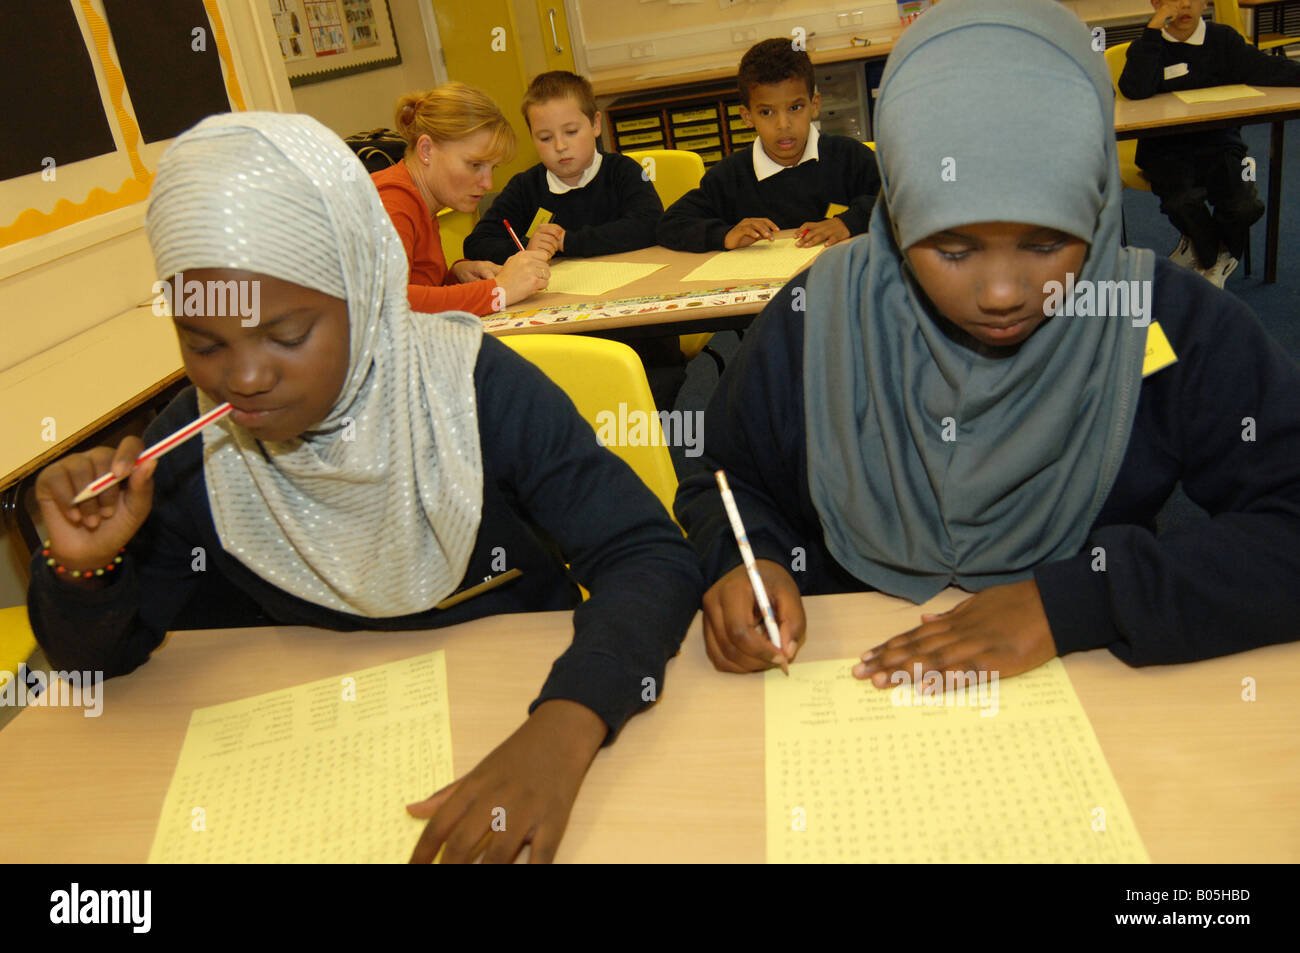 Starting Point school for children from refugee and migrant families to integrate into mainstream education, Bolton - Stock Image